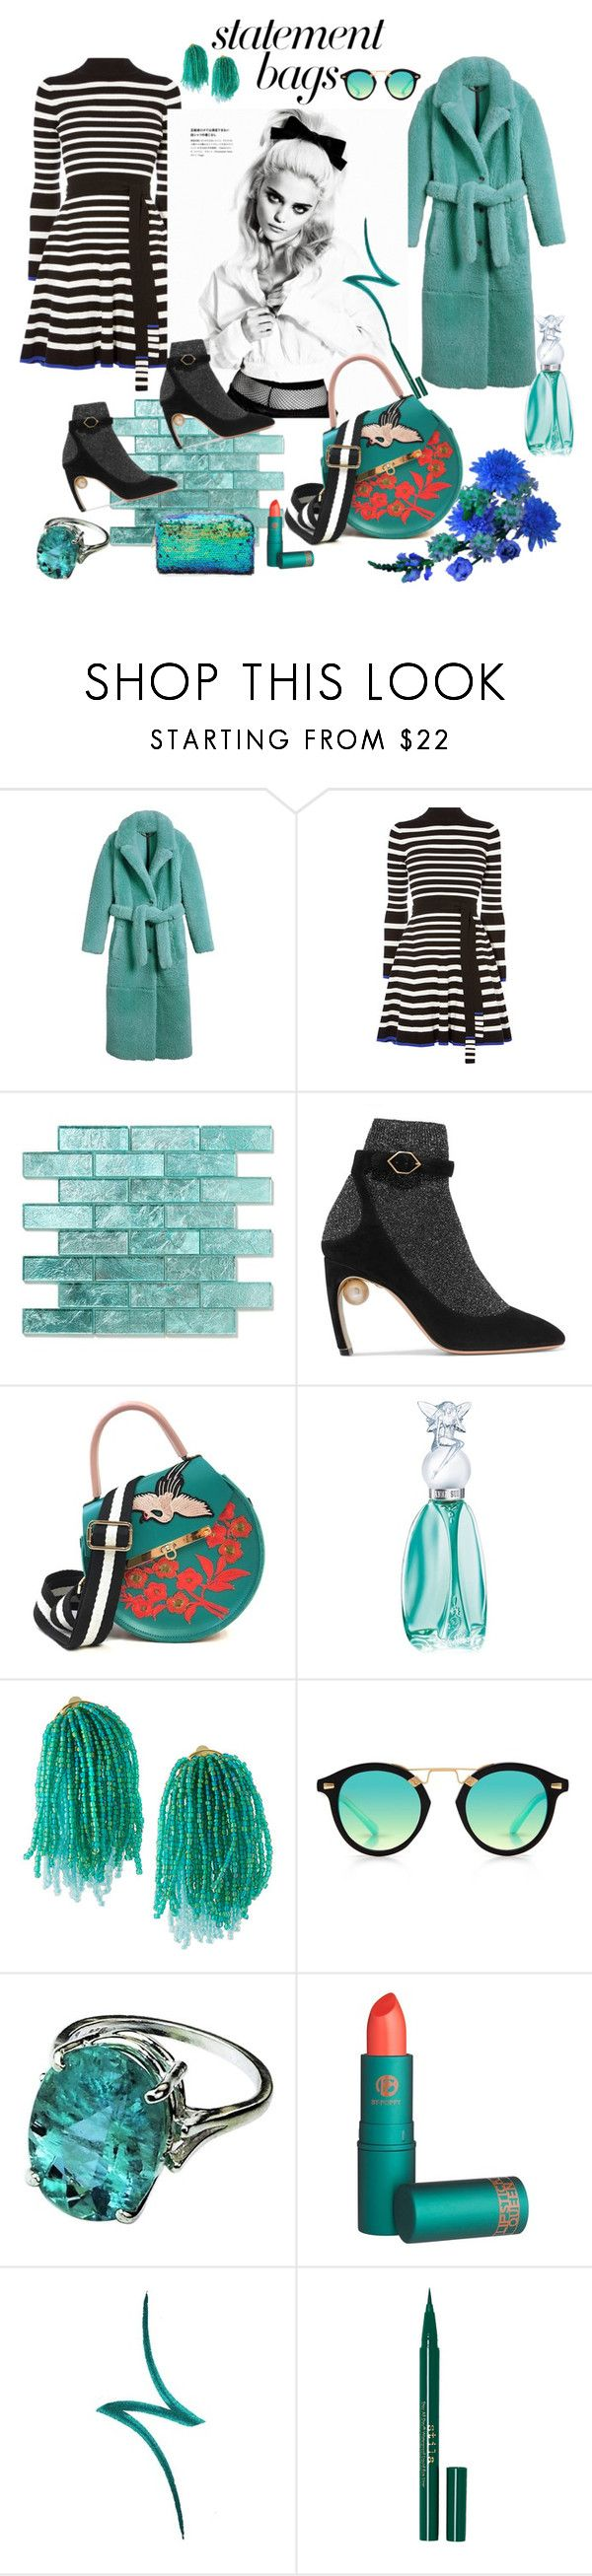 """""""♠♥♦♣"""" by hyunaluna ❤ liked on Polyvore featuring Burberry, Karen Millen, Nicholas Kirkwood, SANCHEZ, Angela Valentine Handbags, Anna Sui, Lydell NYC, Krewe, Lipstick Queen and By Terry"""